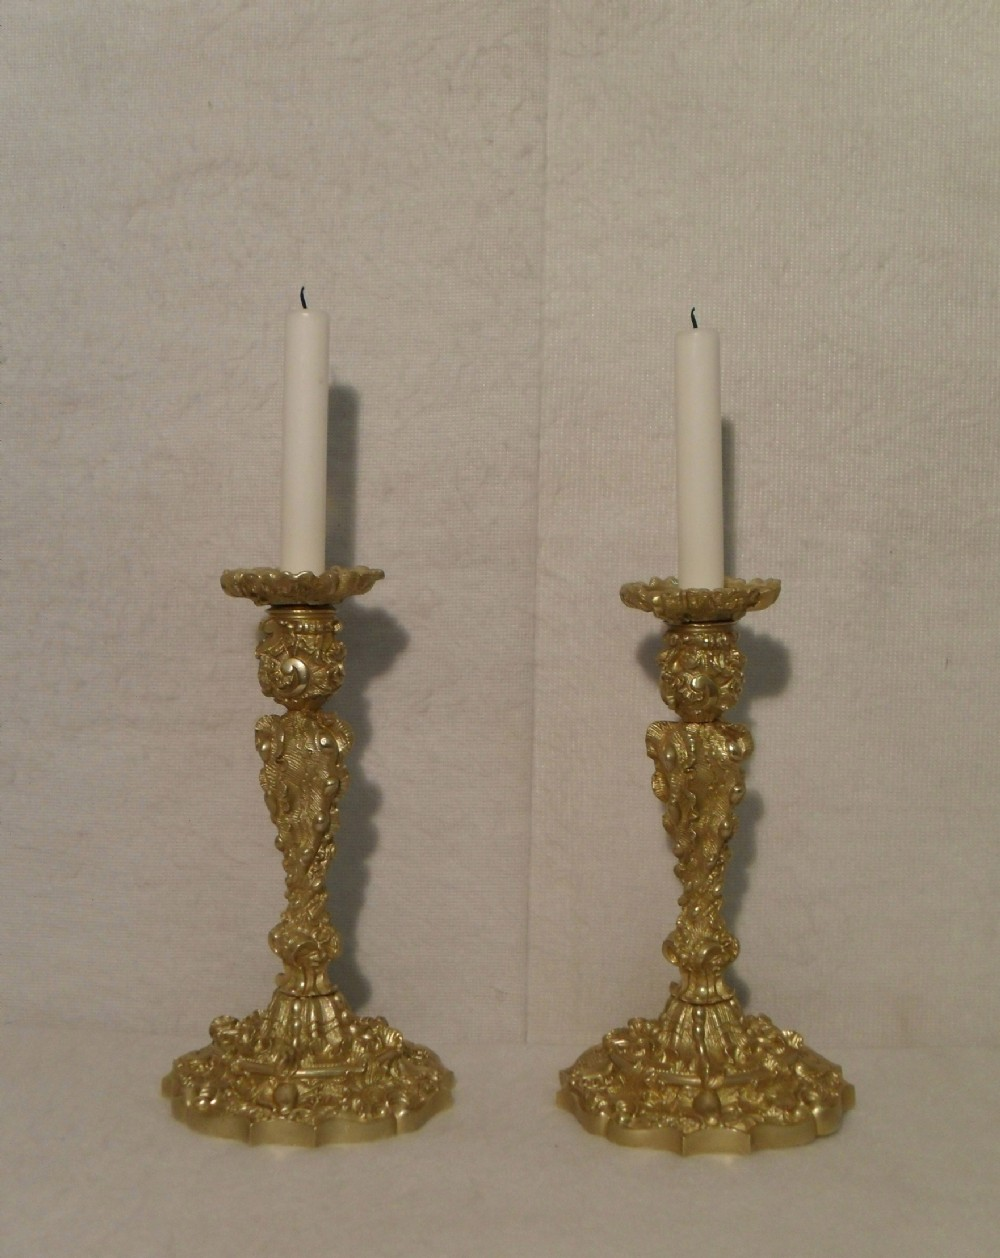 pair of french rococo style candlesticks